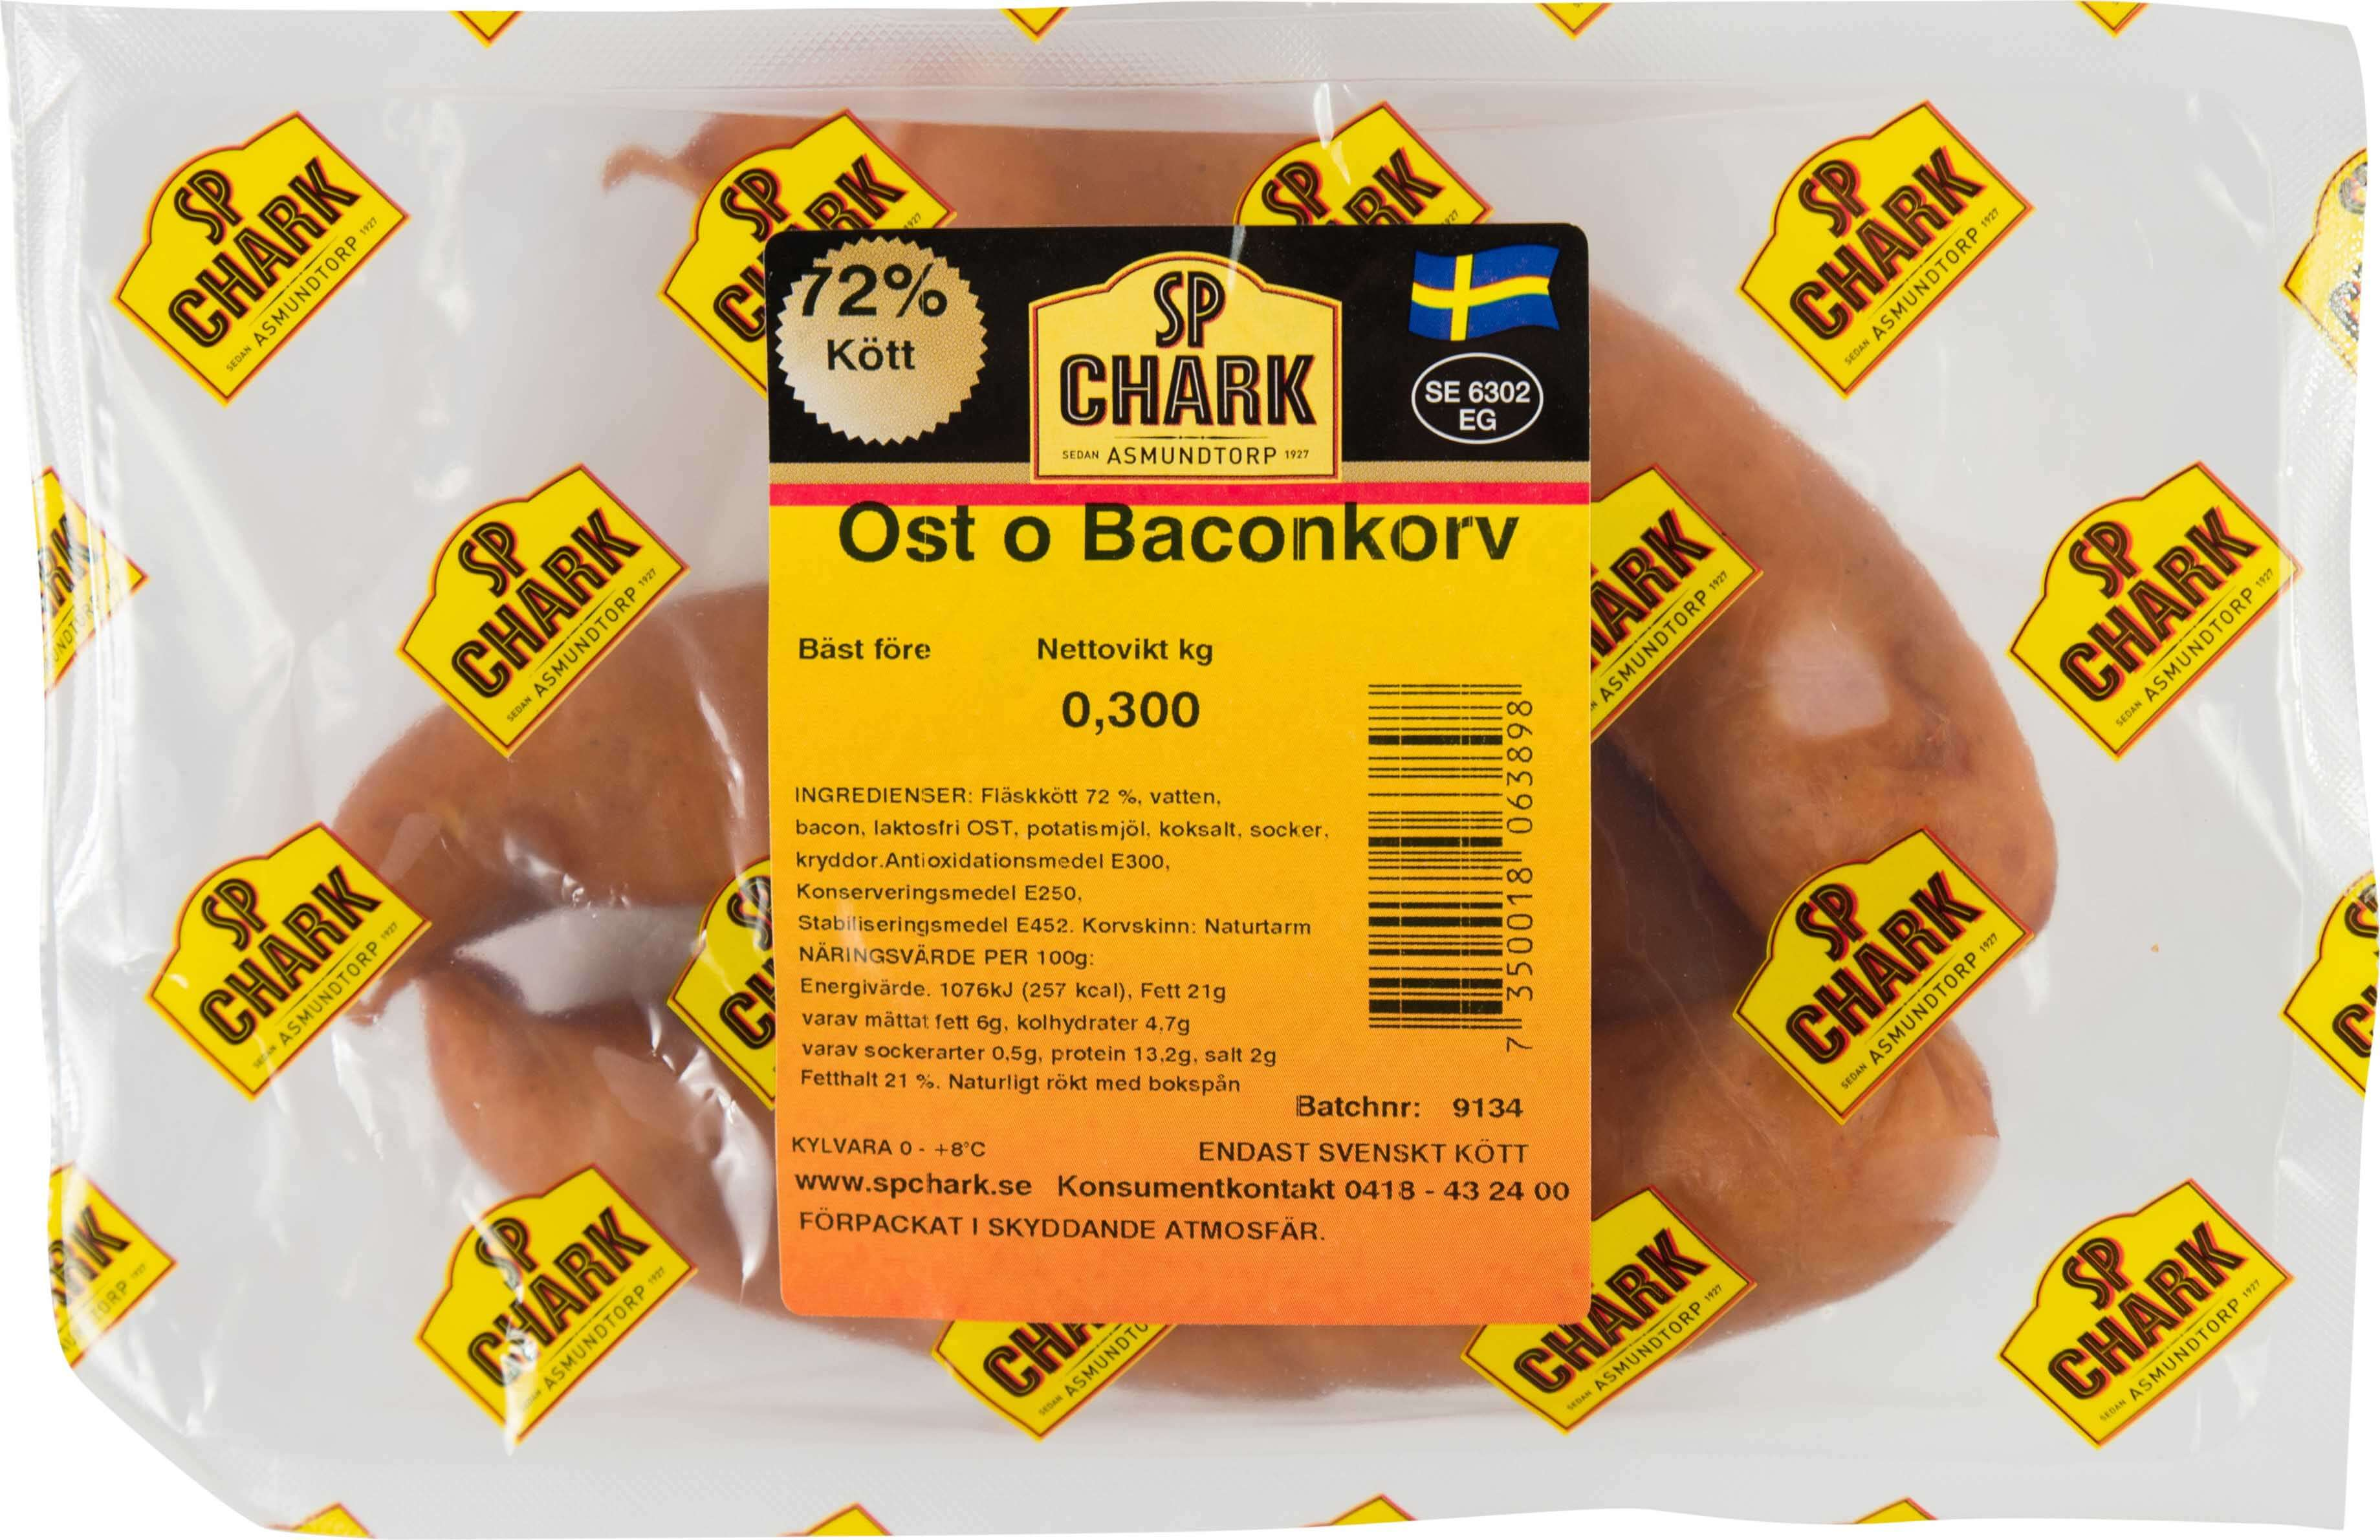 Ost & Baconkorv